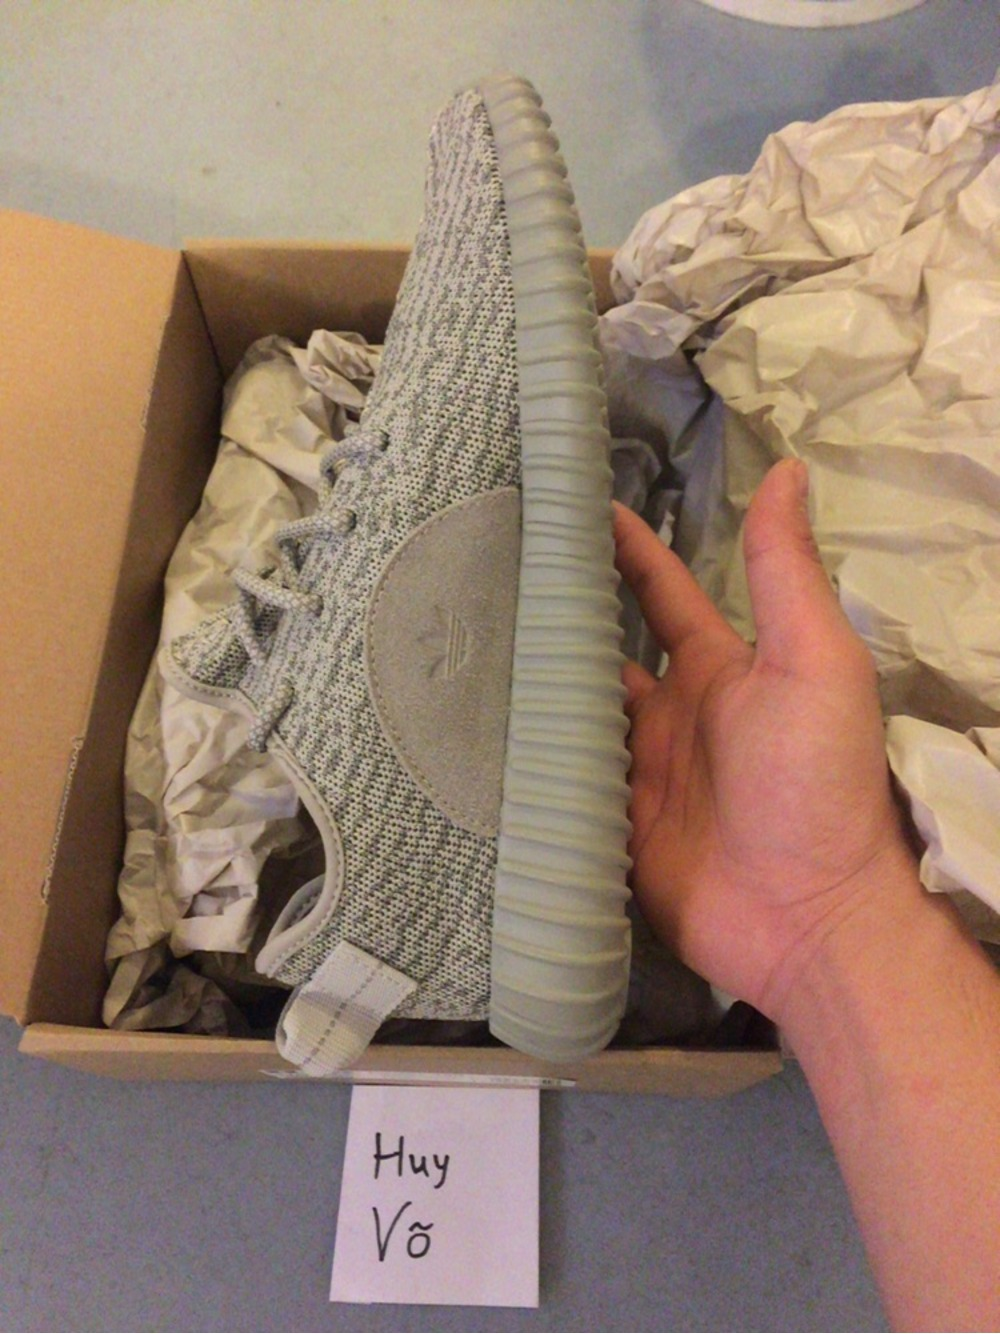 Adidas Yeezy Boost 350 Moonrock size 7 US 40 EU (#271601) from Huy ...